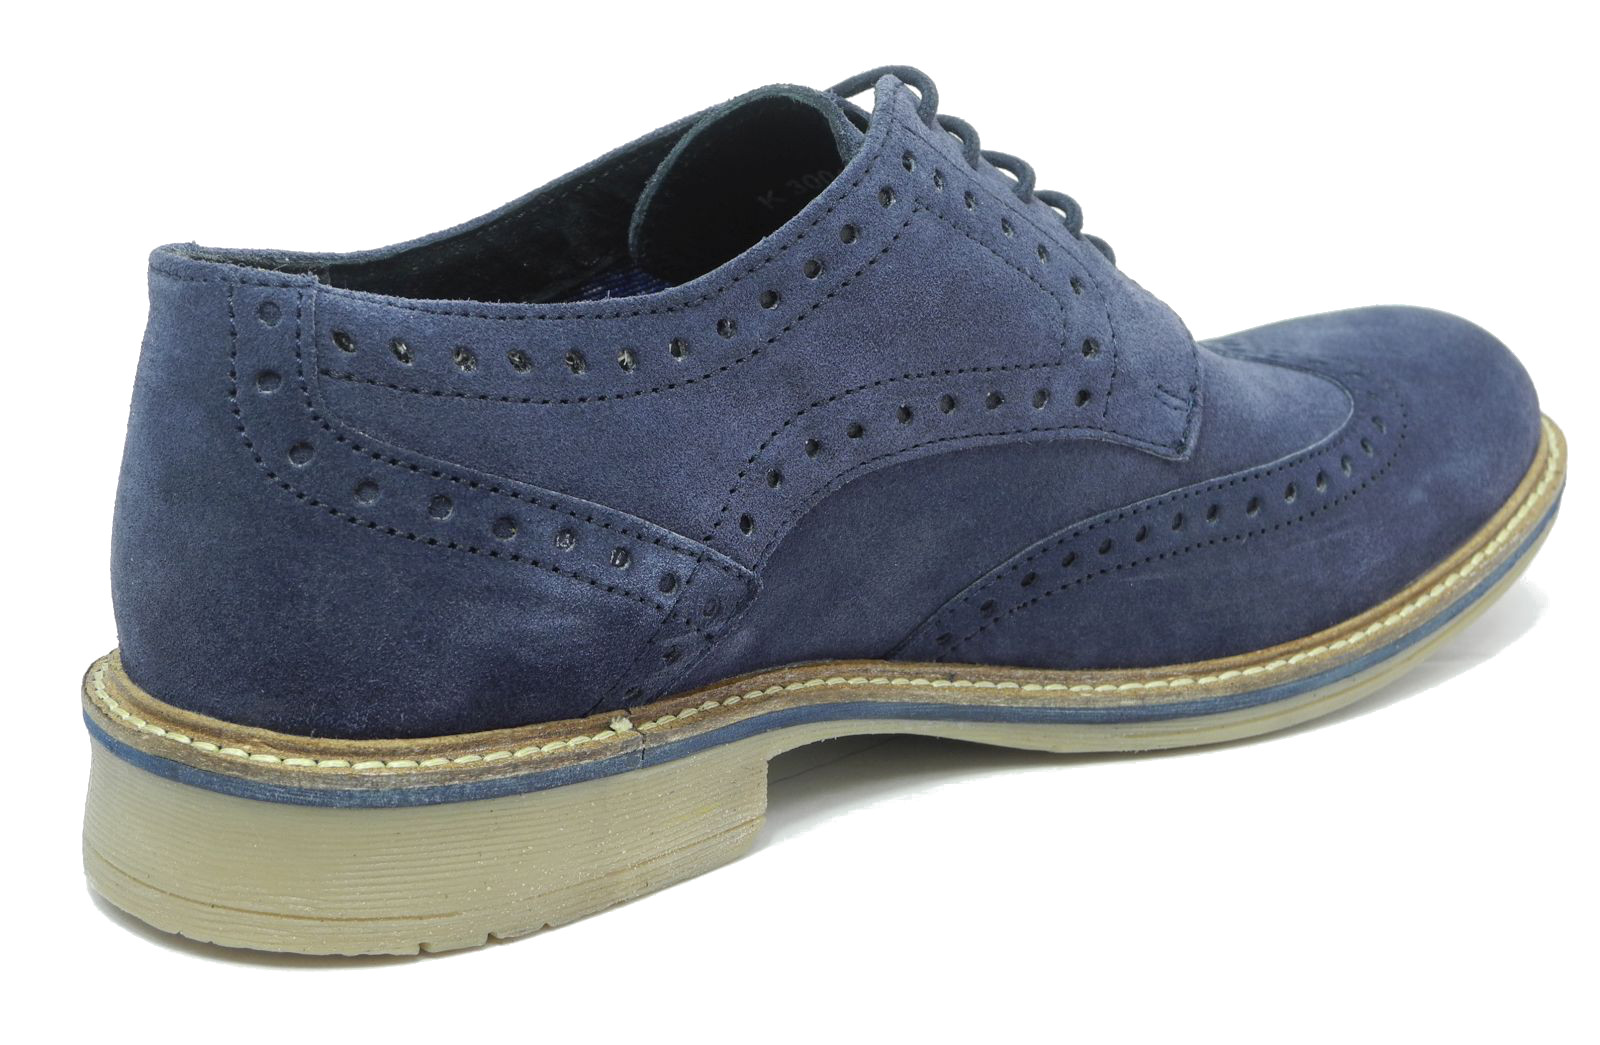 results for mens navy suede brogues Save mens navy suede brogues to get e-mail alerts and updates on your eBay Feed. Unfollow mens navy suede brogues to .